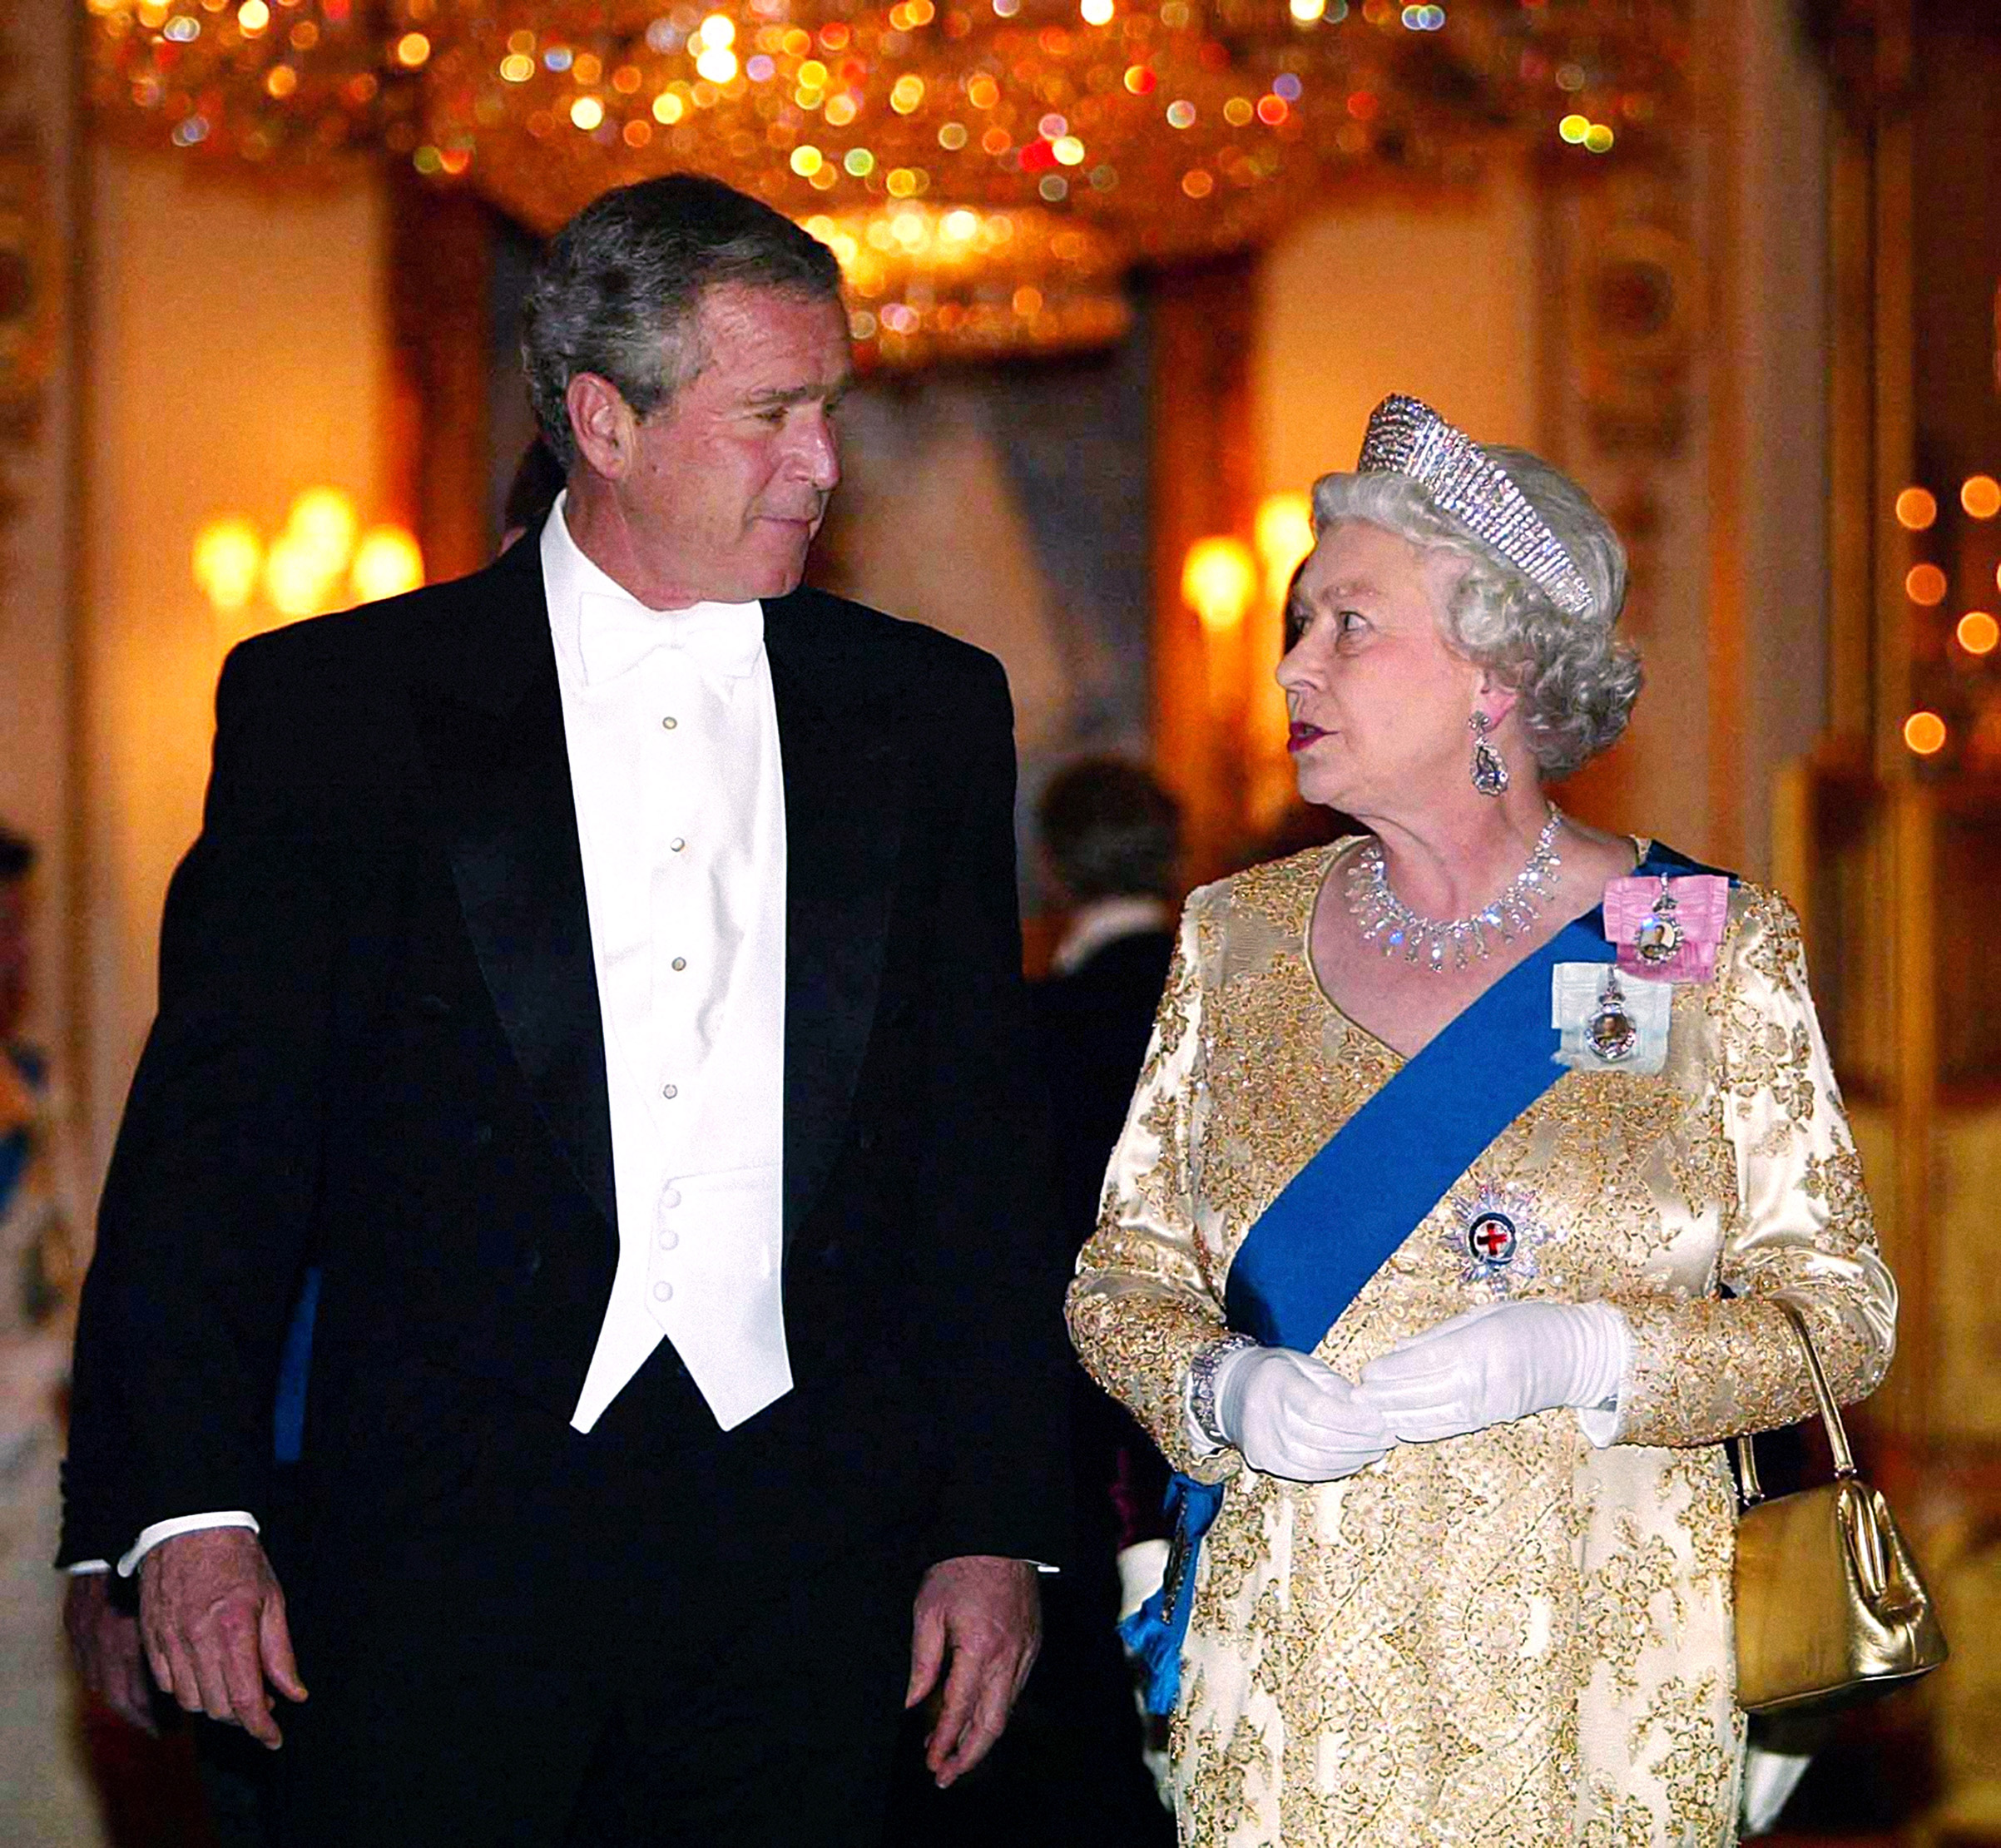 Britain's Queen Elizabeth II arrives with U.S. President George Bush for the Buckingham Palace state banquet in honor of the U.S. President, during the first day of his four-day state visit to the U.K. on Nov. 19, 2003.